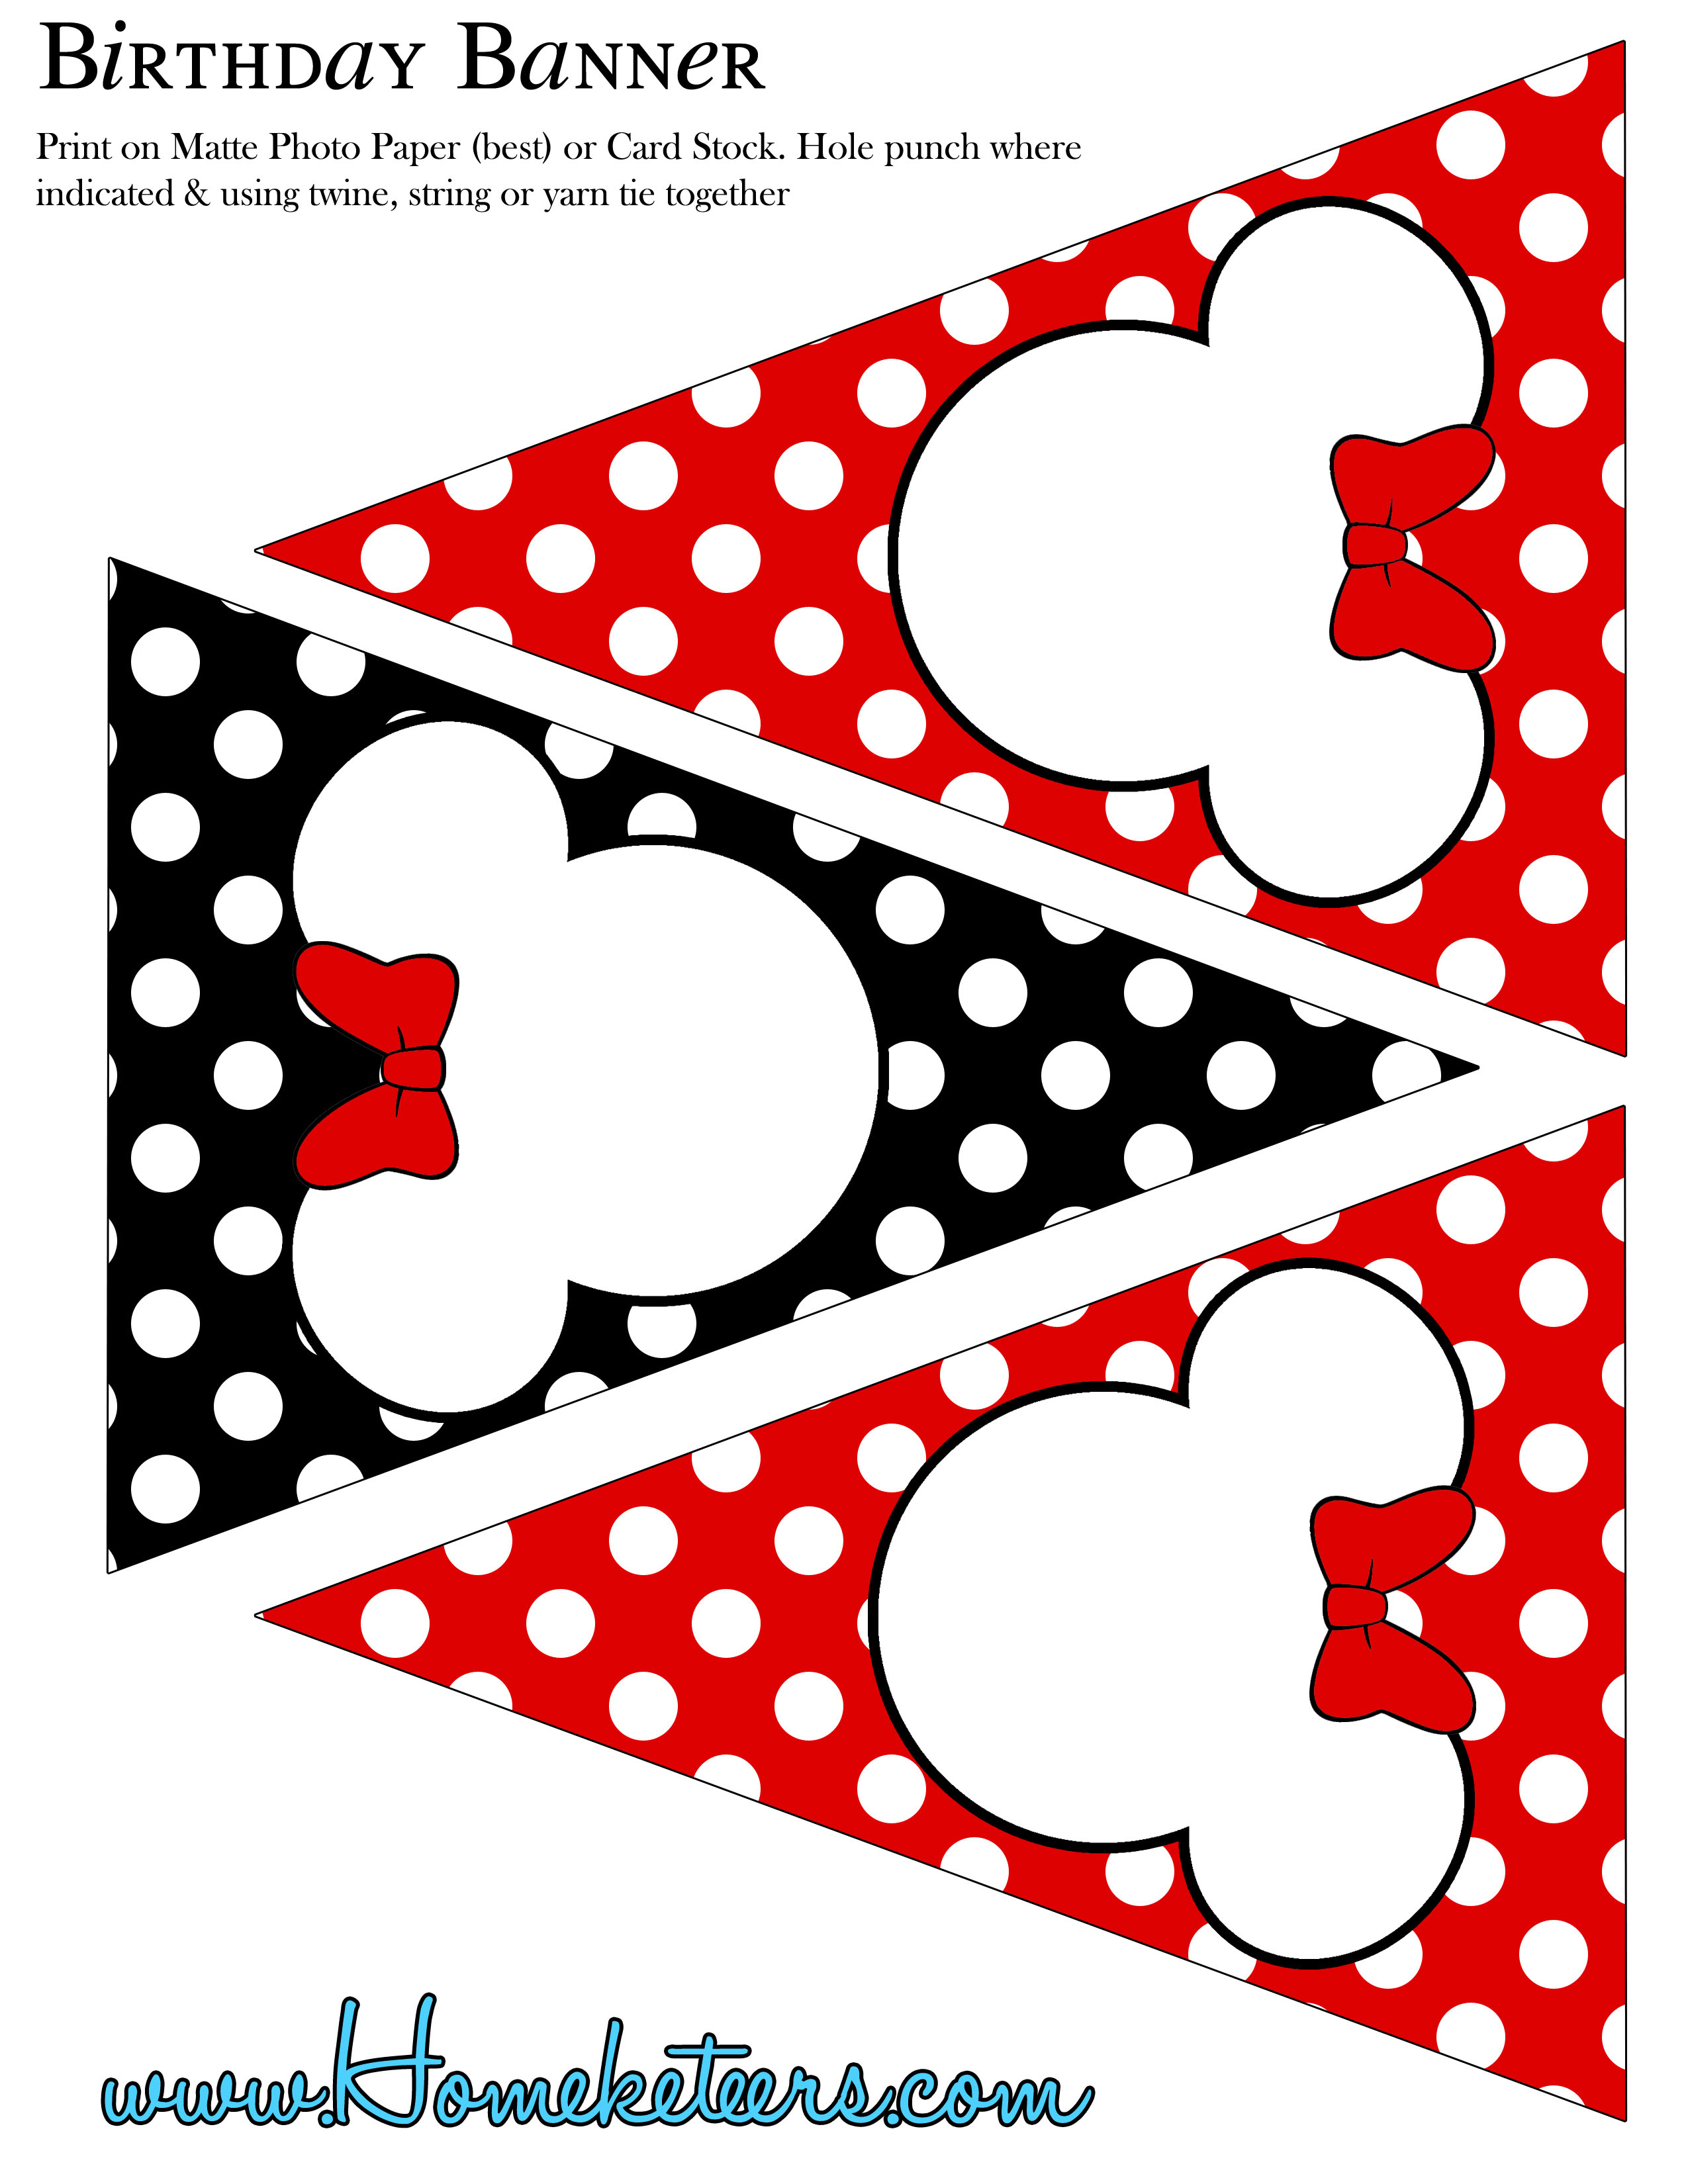 Minnie Mouse Party Printable Kit – Red {Free} - Free Printable Mickey Mouse Birthday Banner